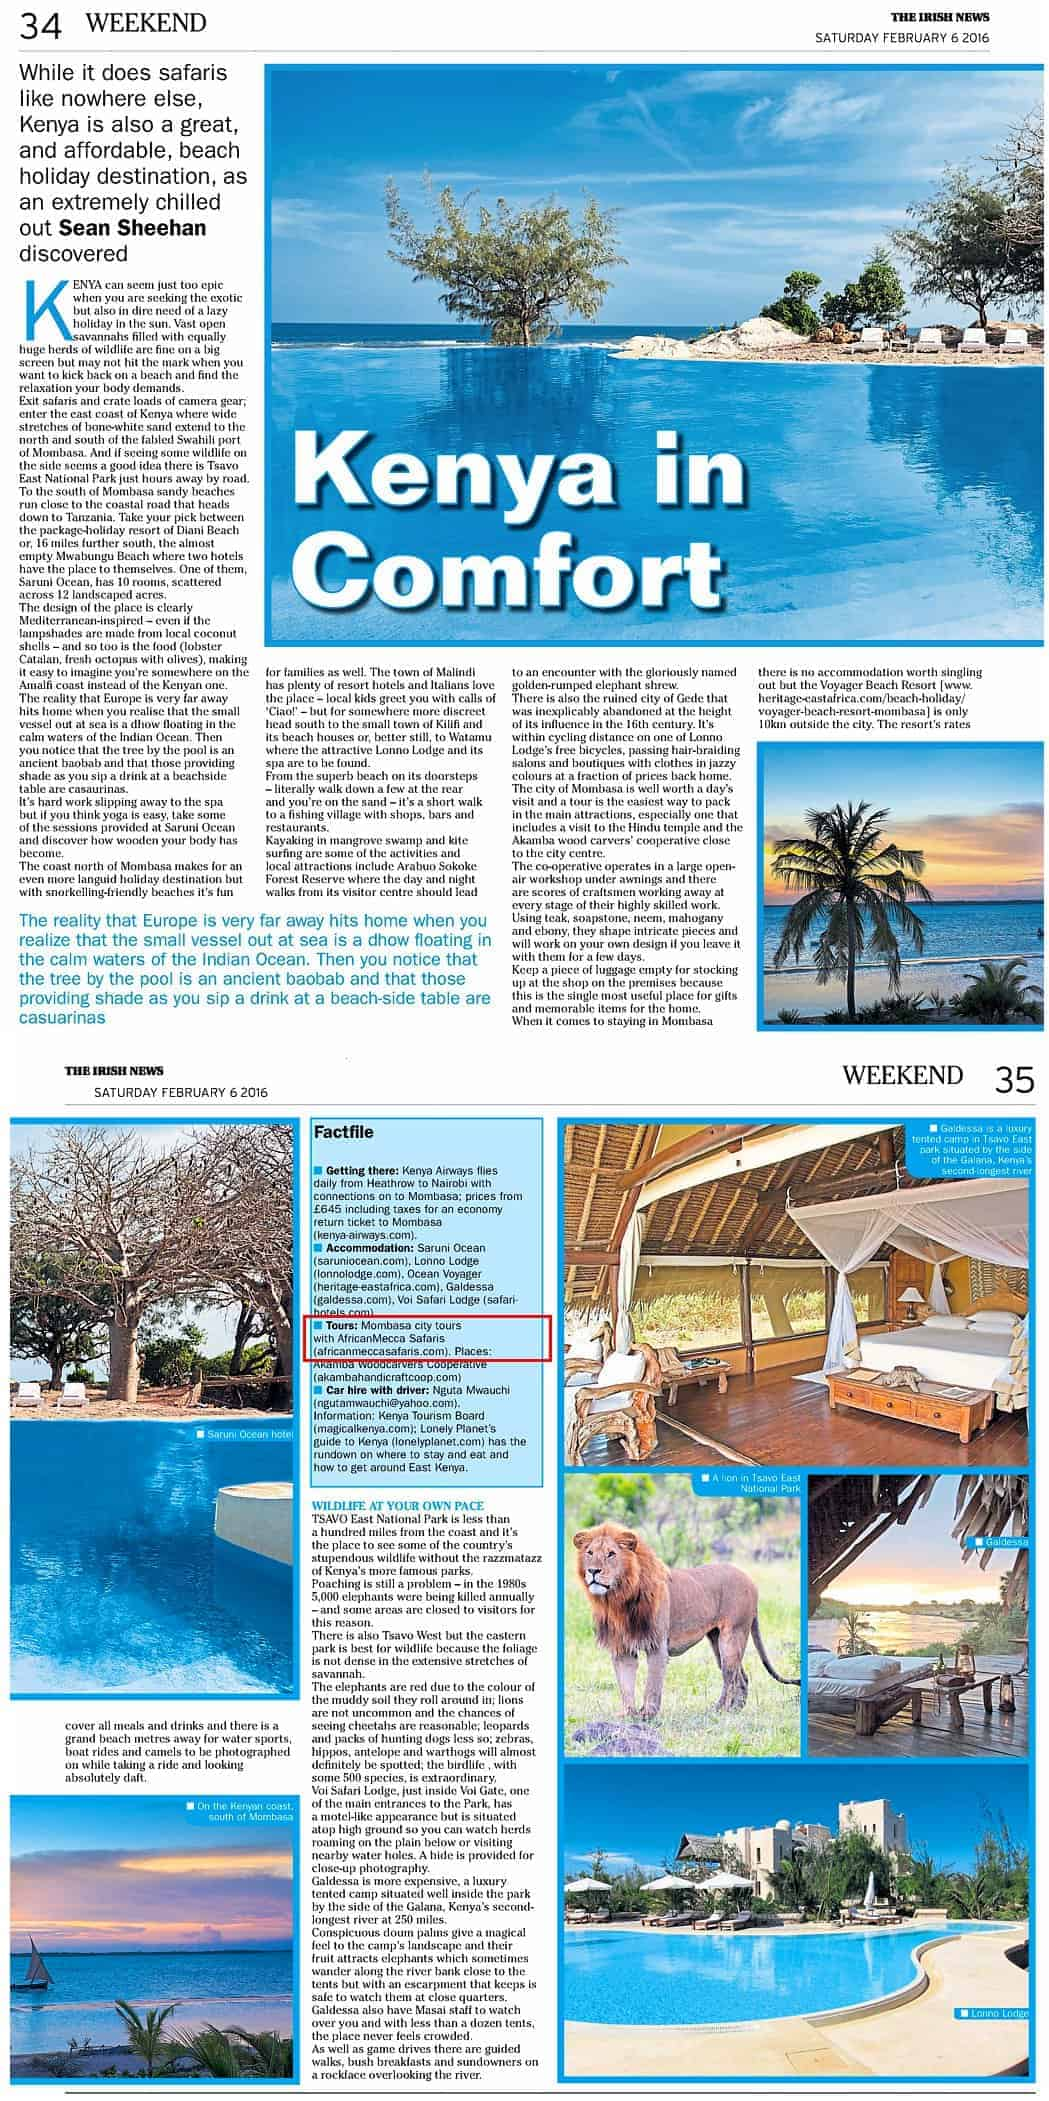 the irish news - kenya is great for beach and safaris